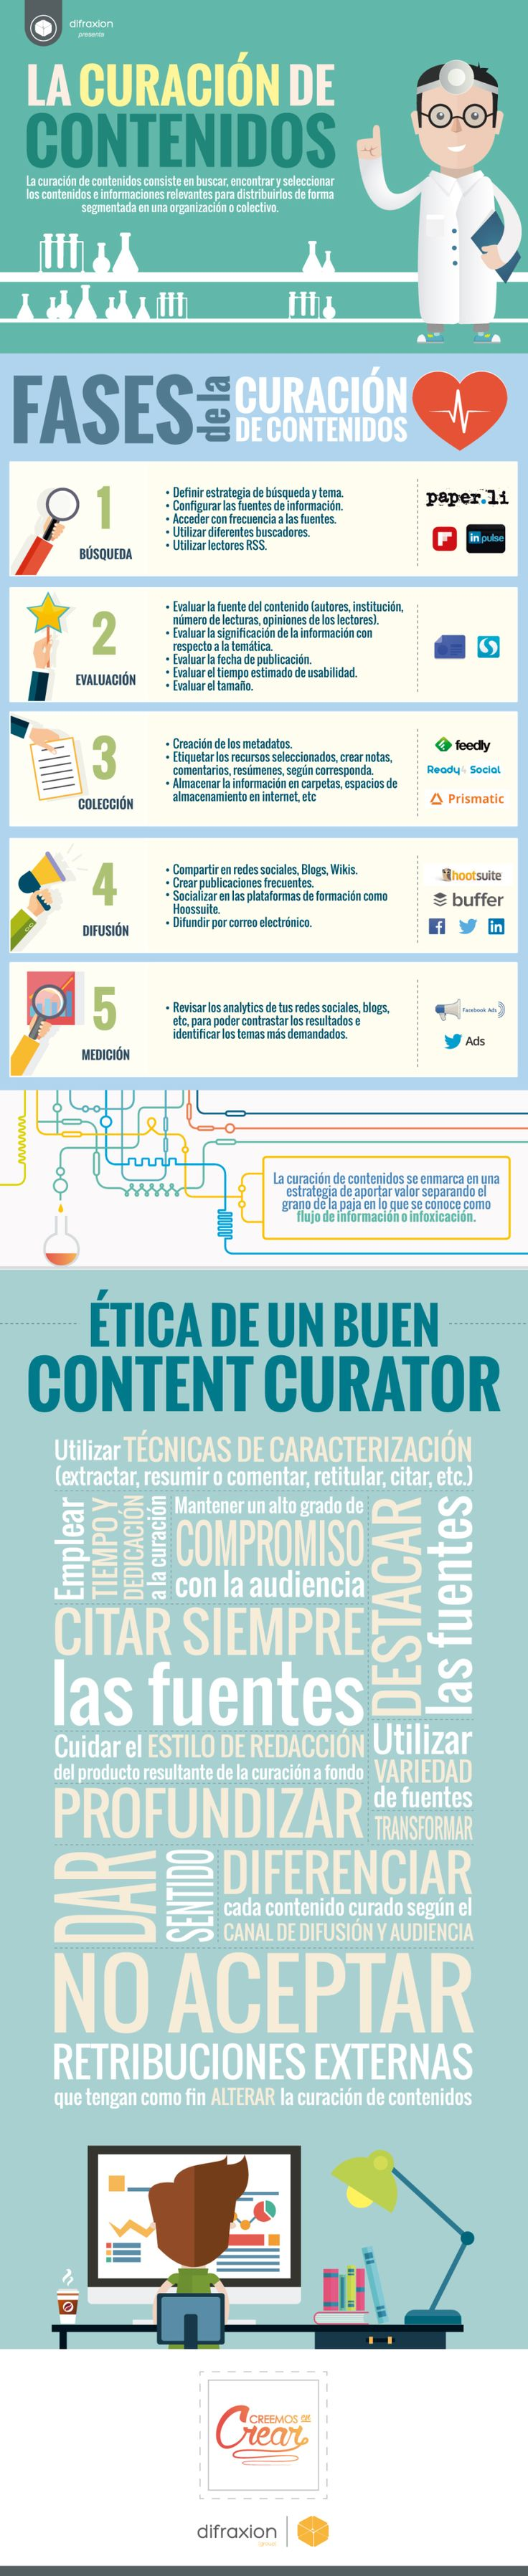 content-curator-redes-sociales